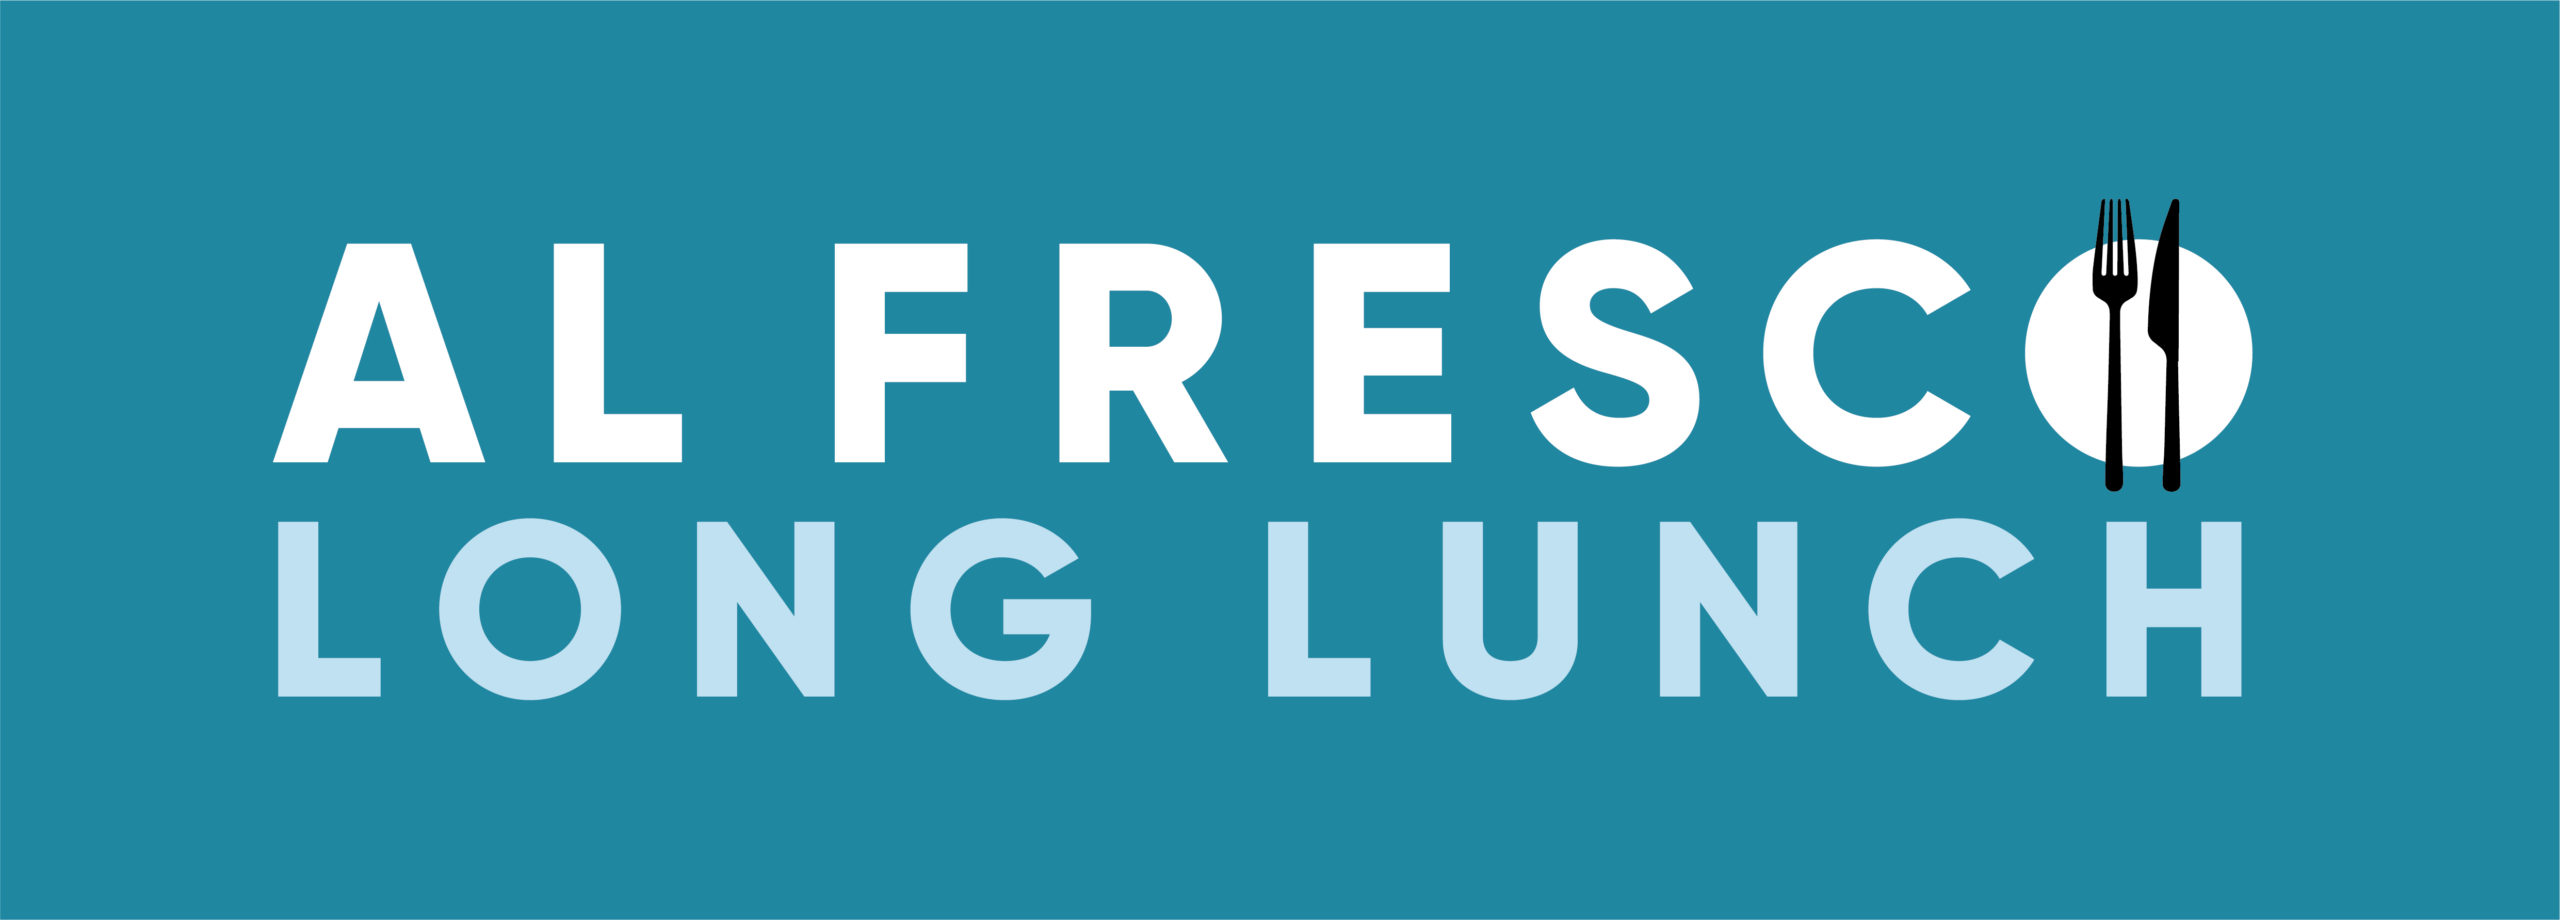 AL-FRESCO-LONG-LUNCH-LOGO-BLUE-BLOCK-RGB-01-4